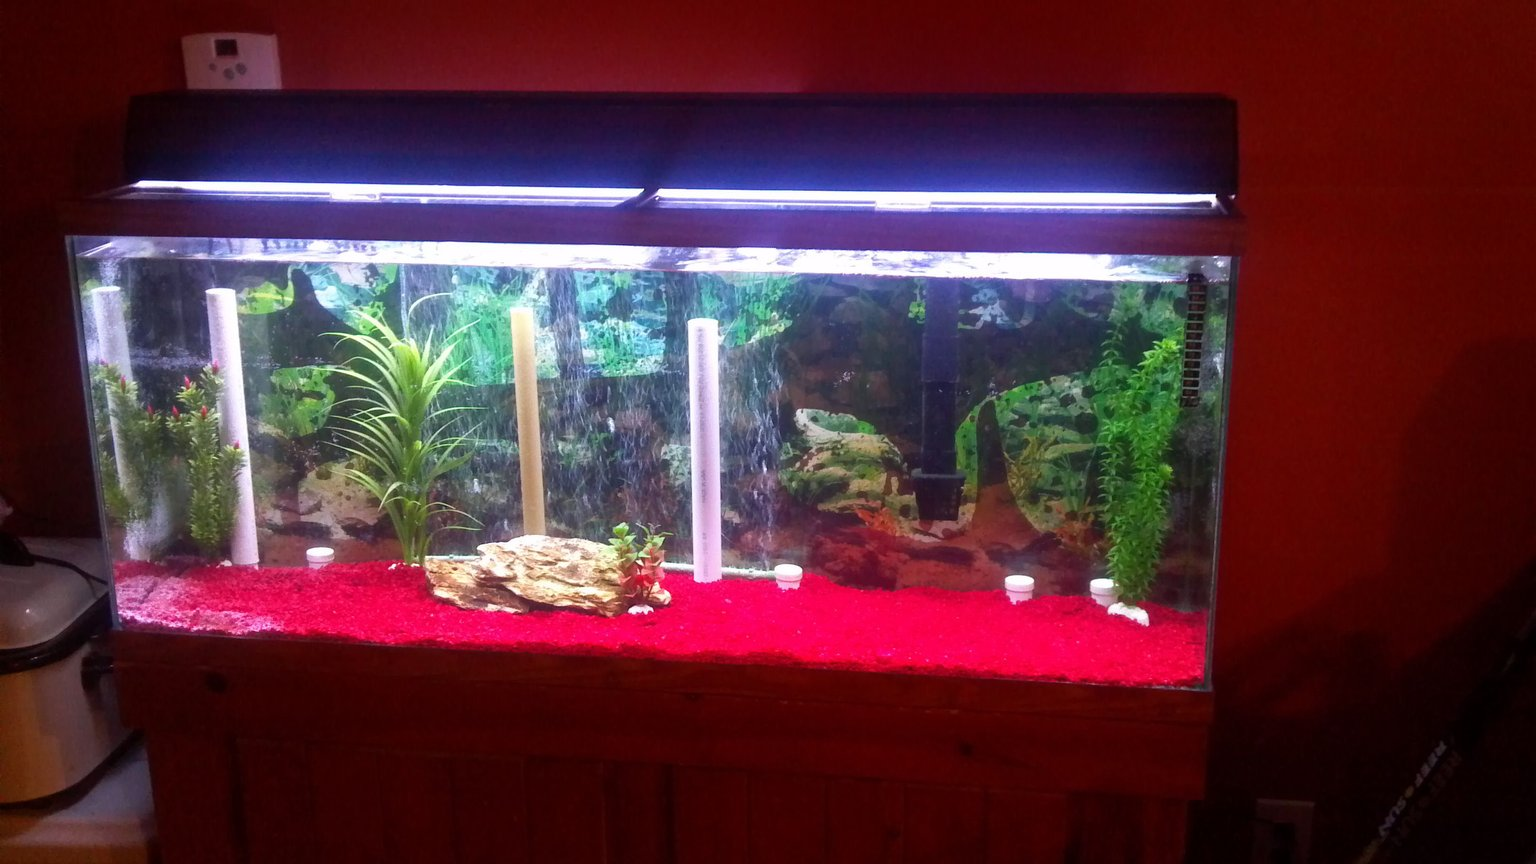 55 gallons freshwater fish tank (mostly fish and non-living decorations) - Old tank